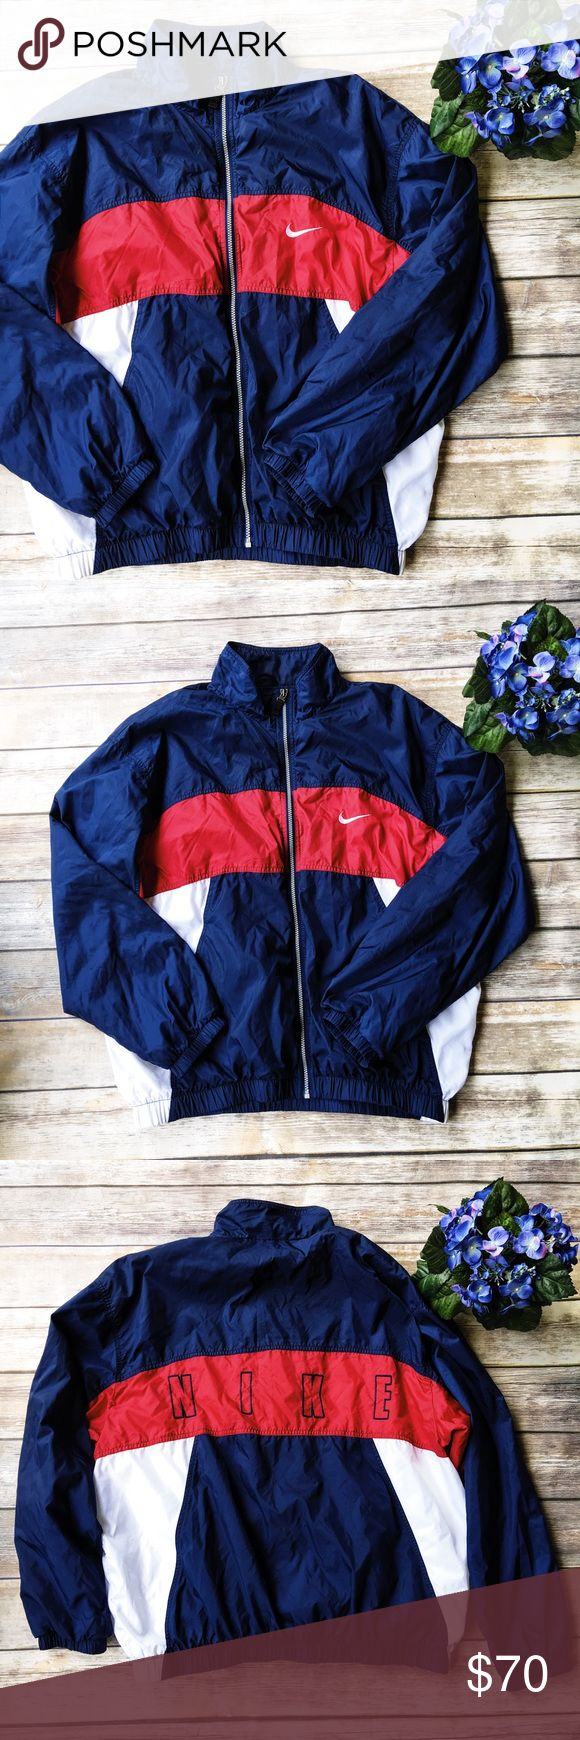 Nike Vintage Windbreaker Jacket  ★ Excellent condition. One minor pull in the stitching on the back, can very easily be fixed.  ★ This awesome vintage Nike windbreaker is an absolute must have! Perfect for fall and winter exercise activities.  Featured American colors!  ★ Polyester, Nylon. ★ NO TRADES!  ★ NO MODELING!  ★ YES REASONABLE OFFERS! ✅ ★ Measurements available by request and as soon as possible!  Nike Jackets & Coats